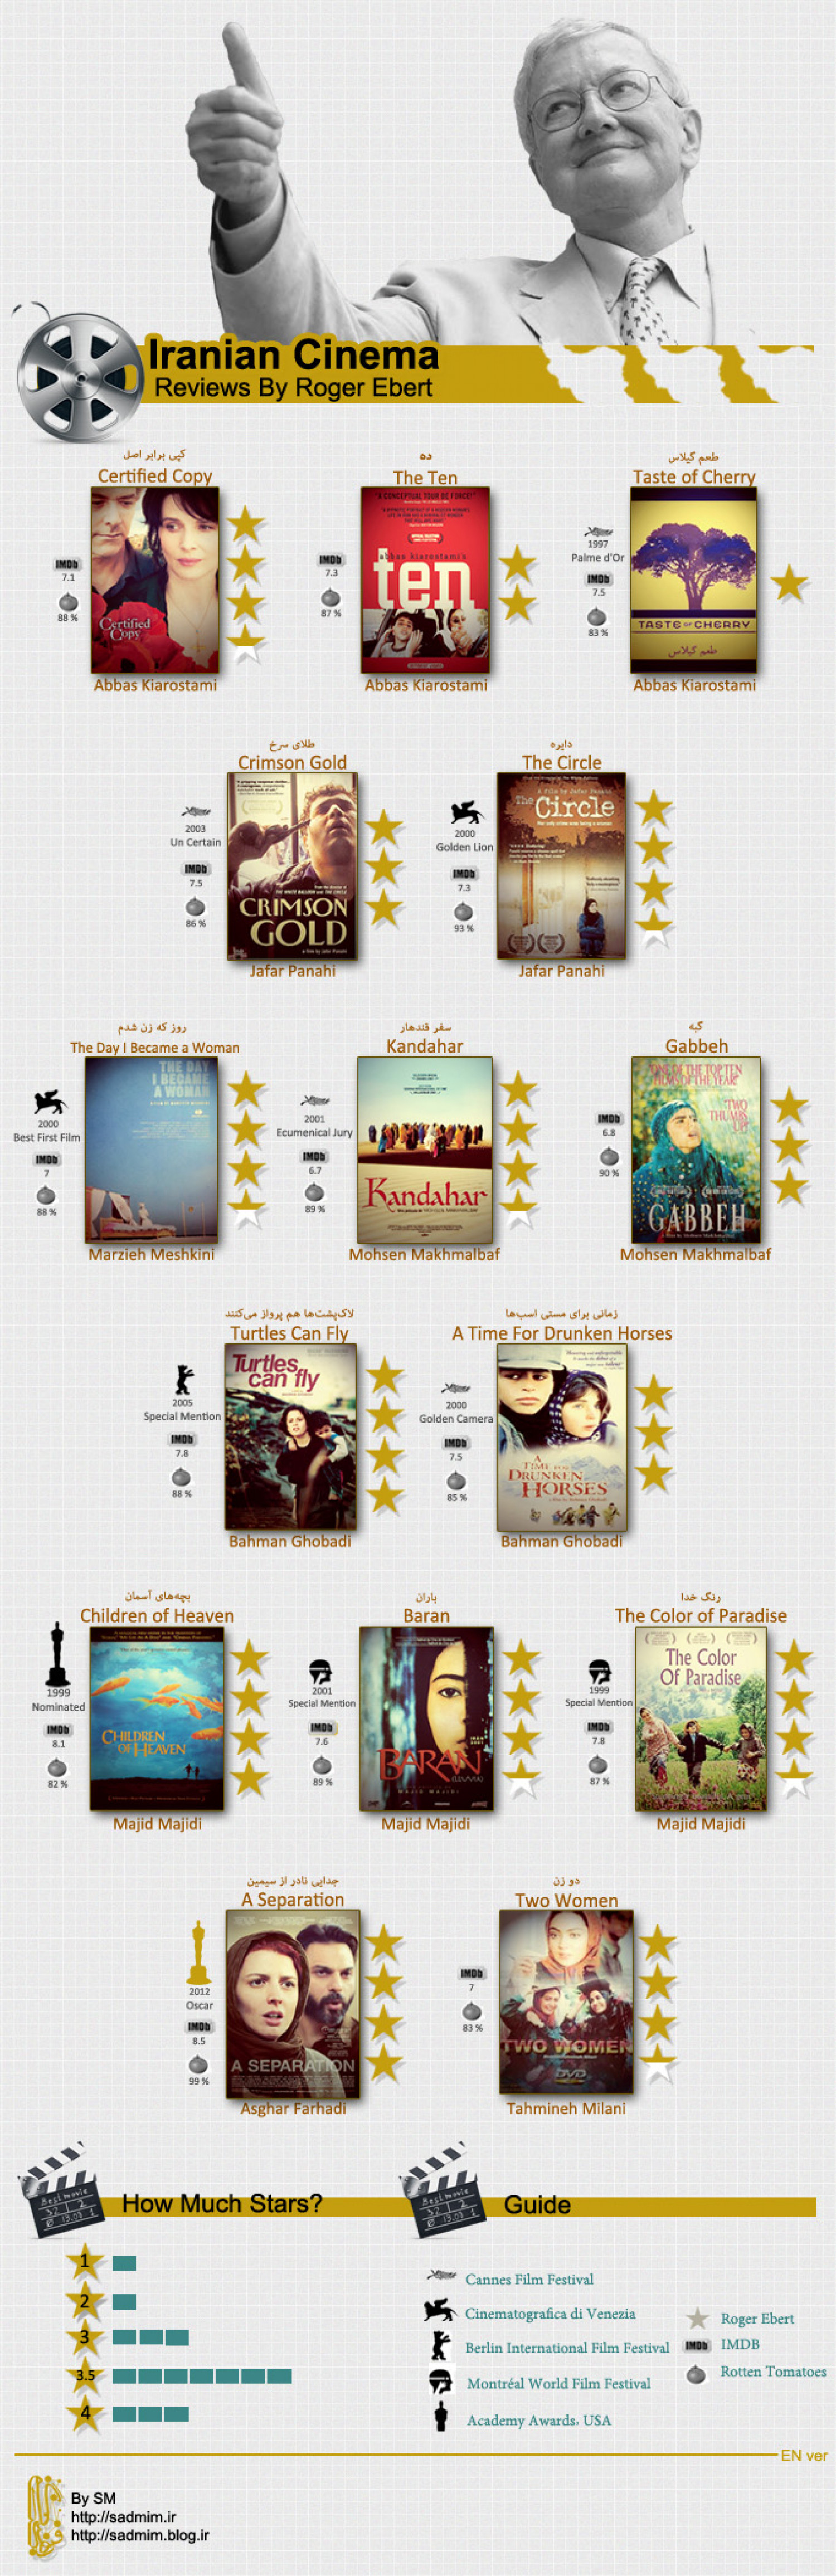 Iranian Cinema Reviews by Roger Ebert(EN ver) Infographic